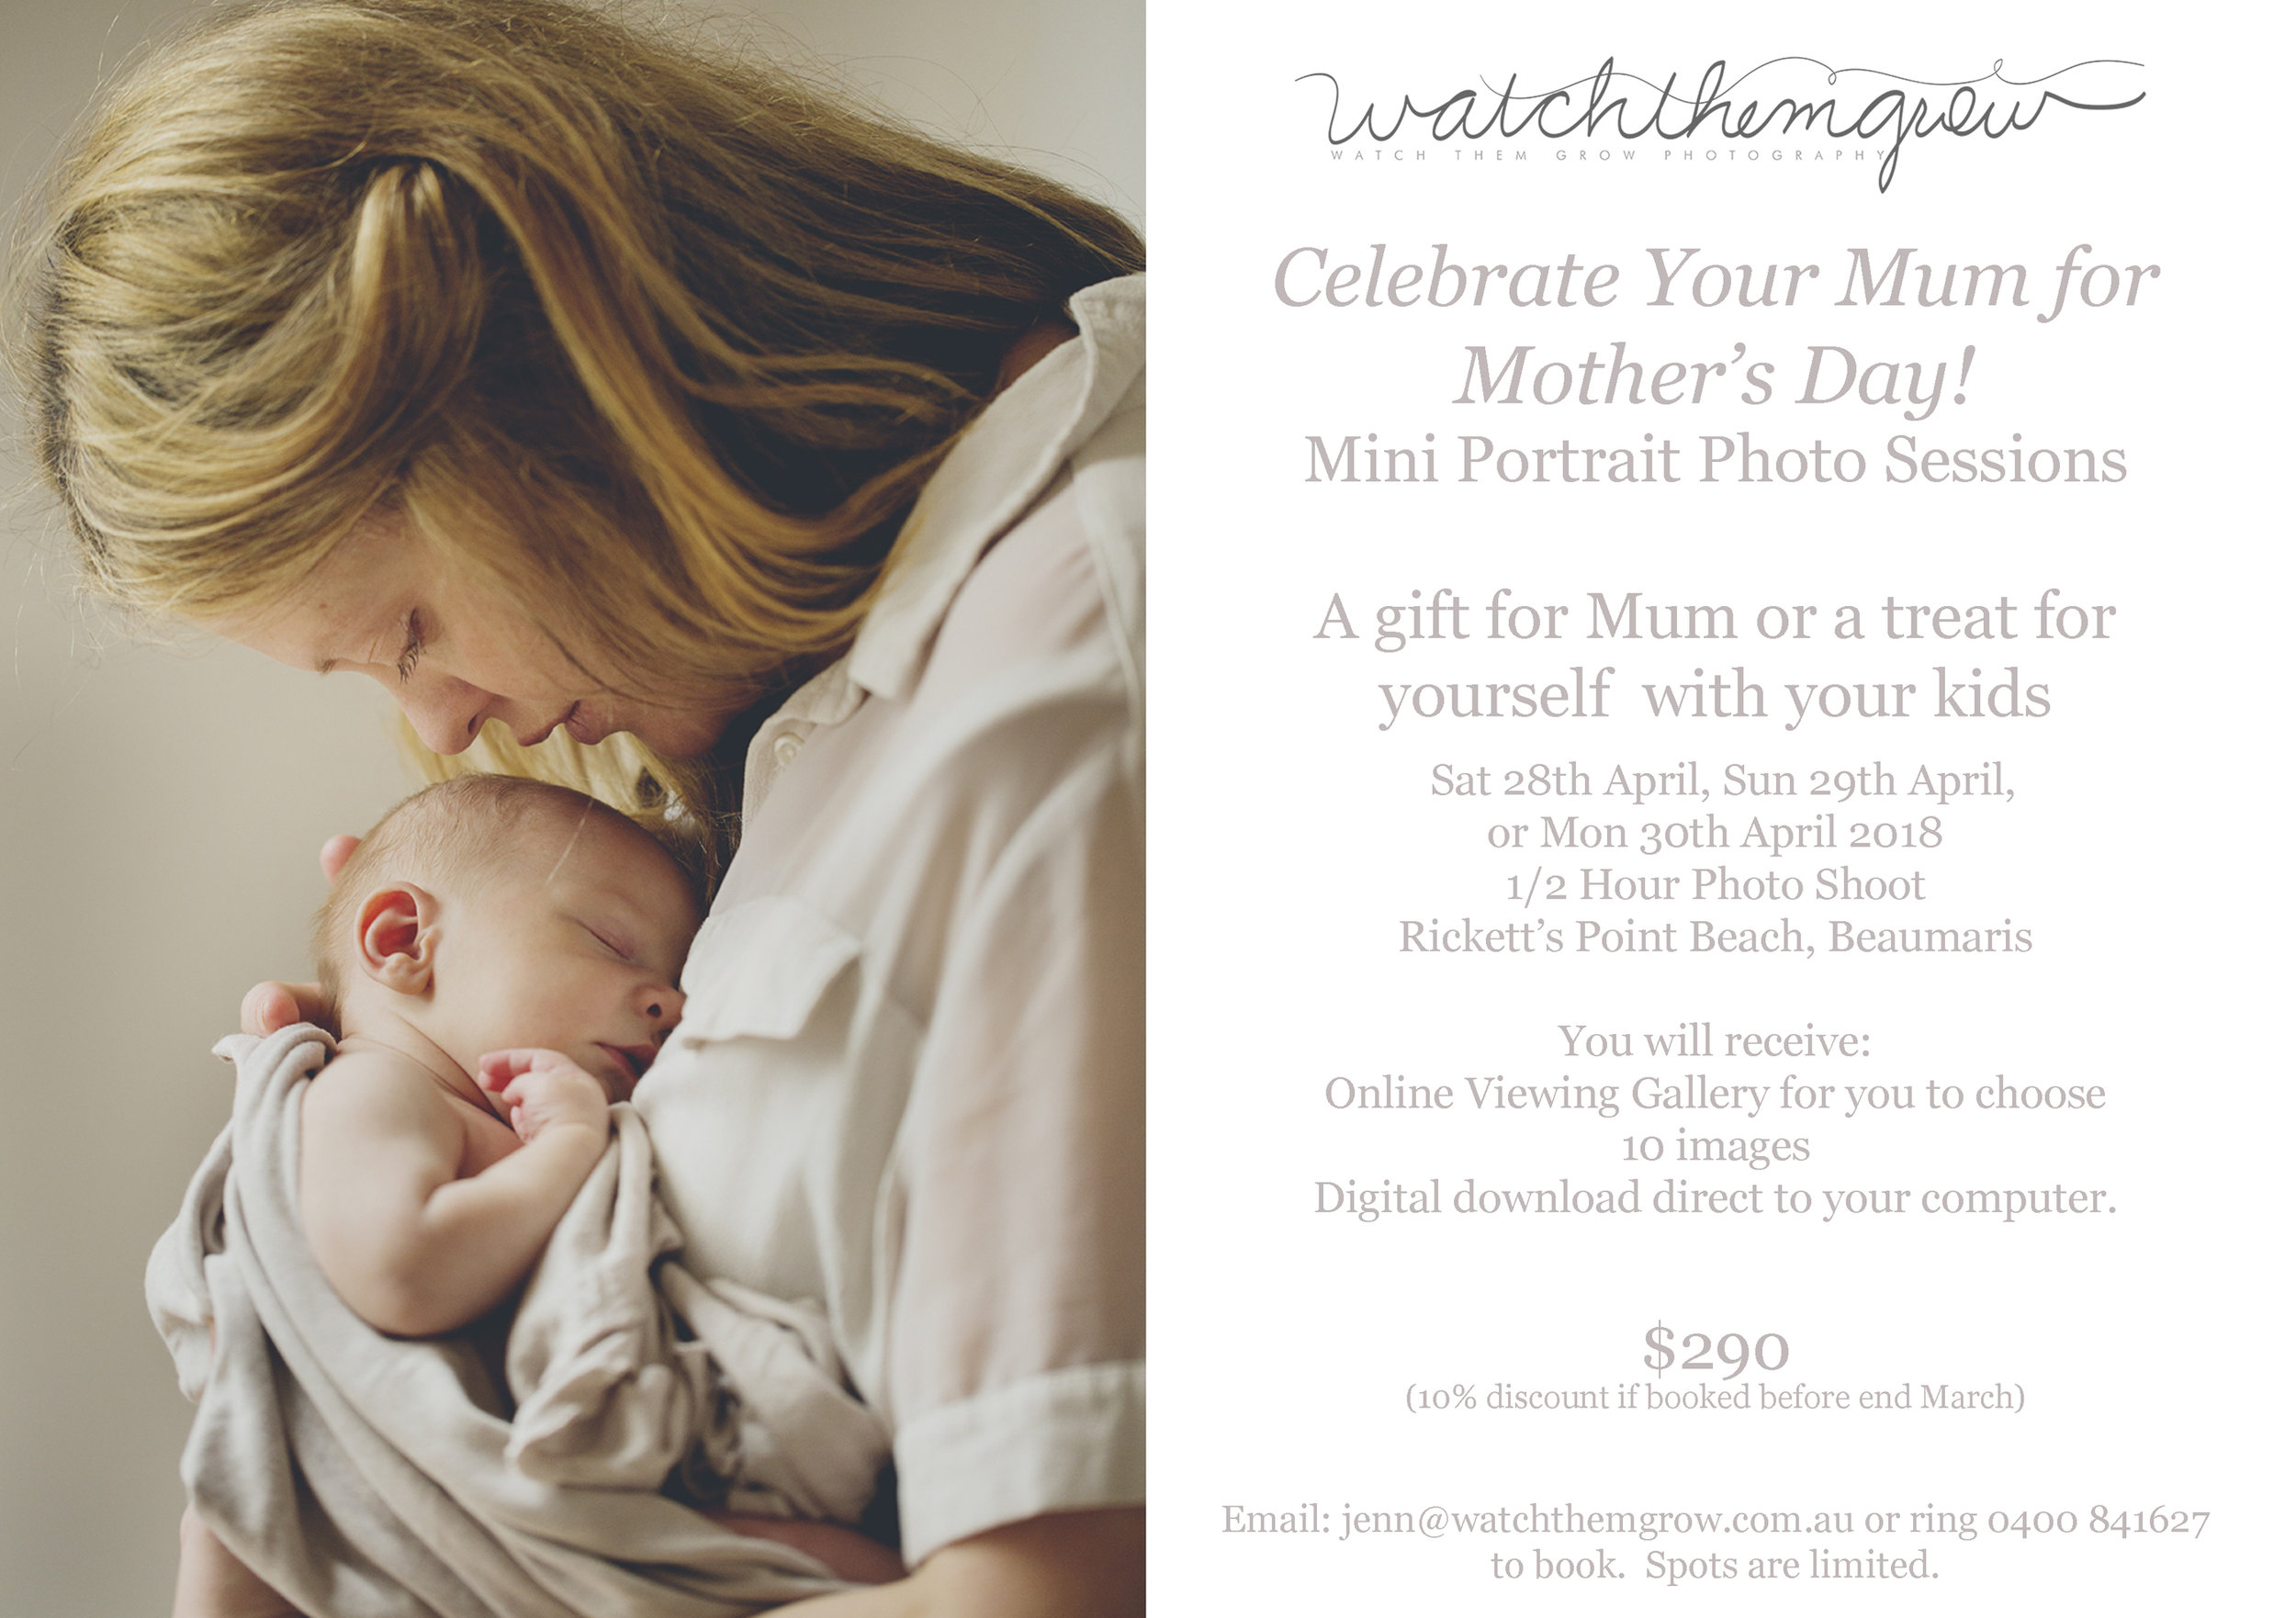 Mother's Day Mini Portrait Photo Sessions Melbourne